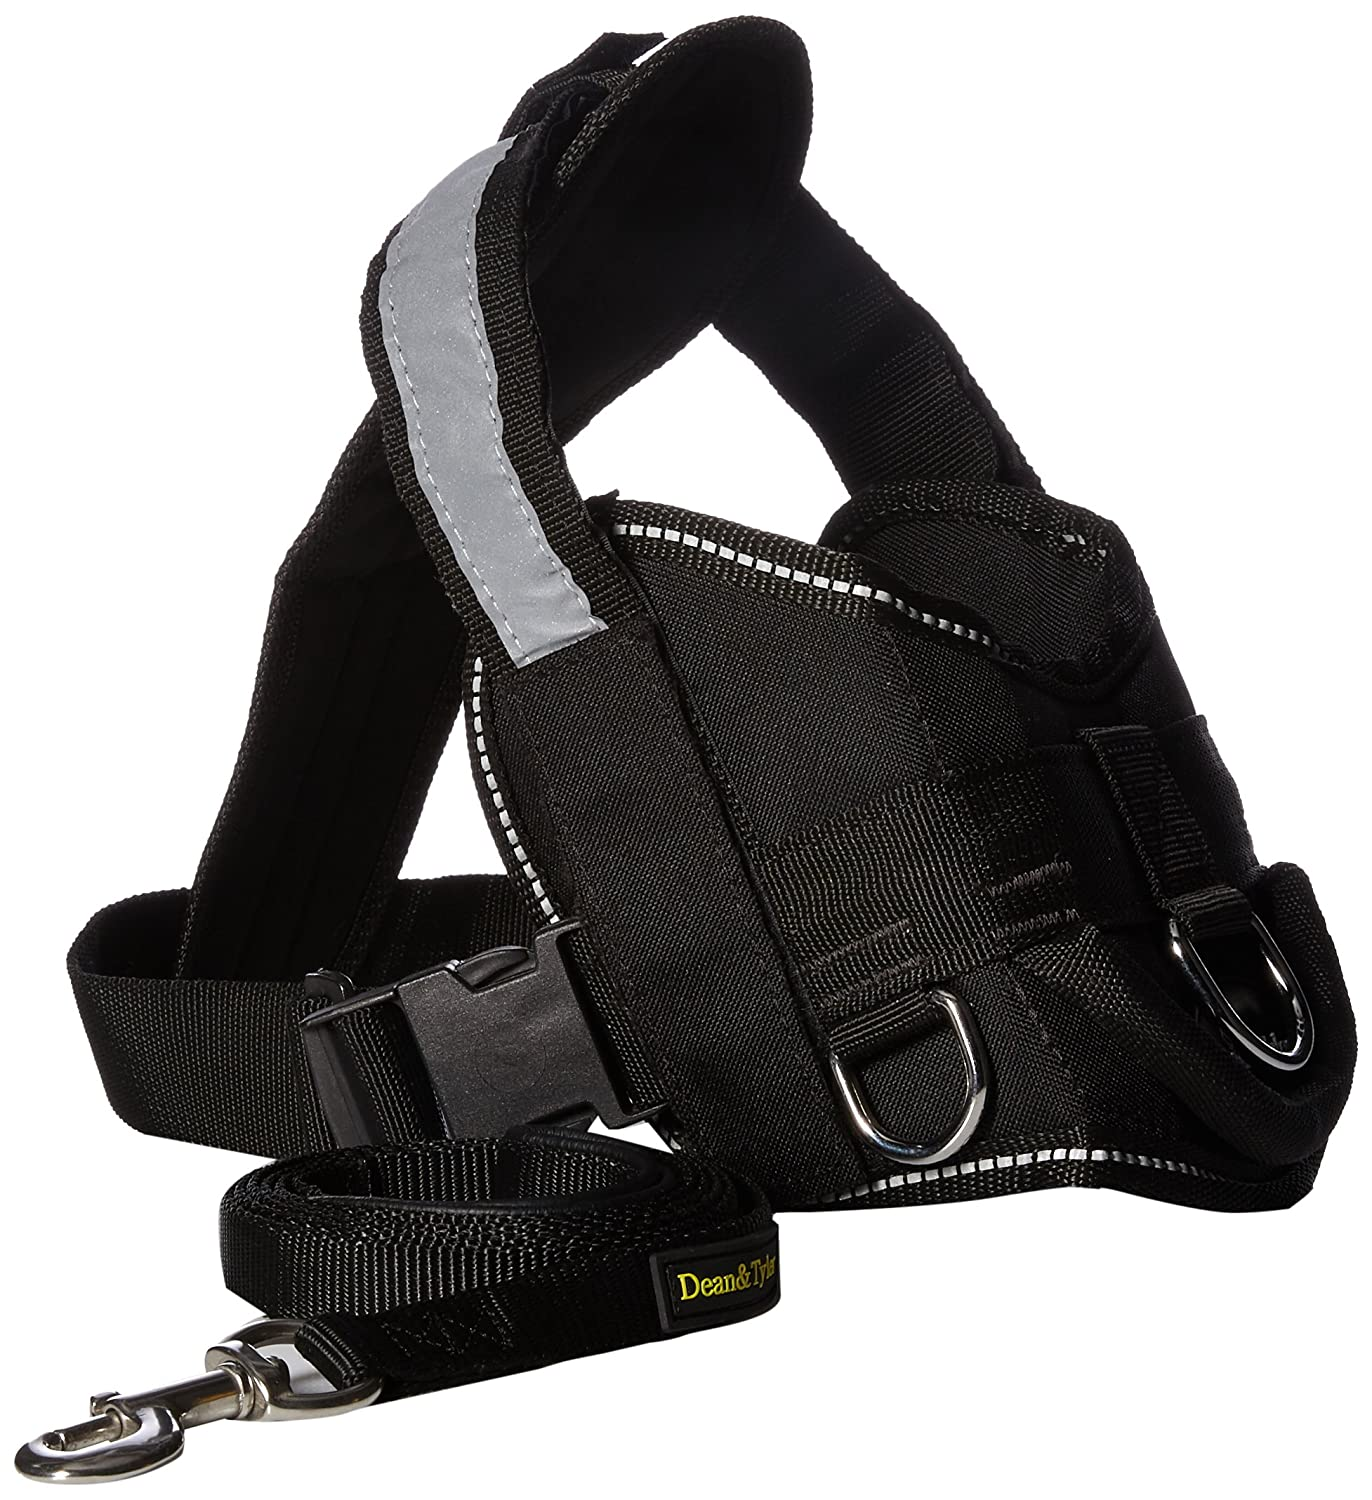 Dean & Tyler Seizure Alert Service Dog Harness with Padded Puppy Leash, Small, Black